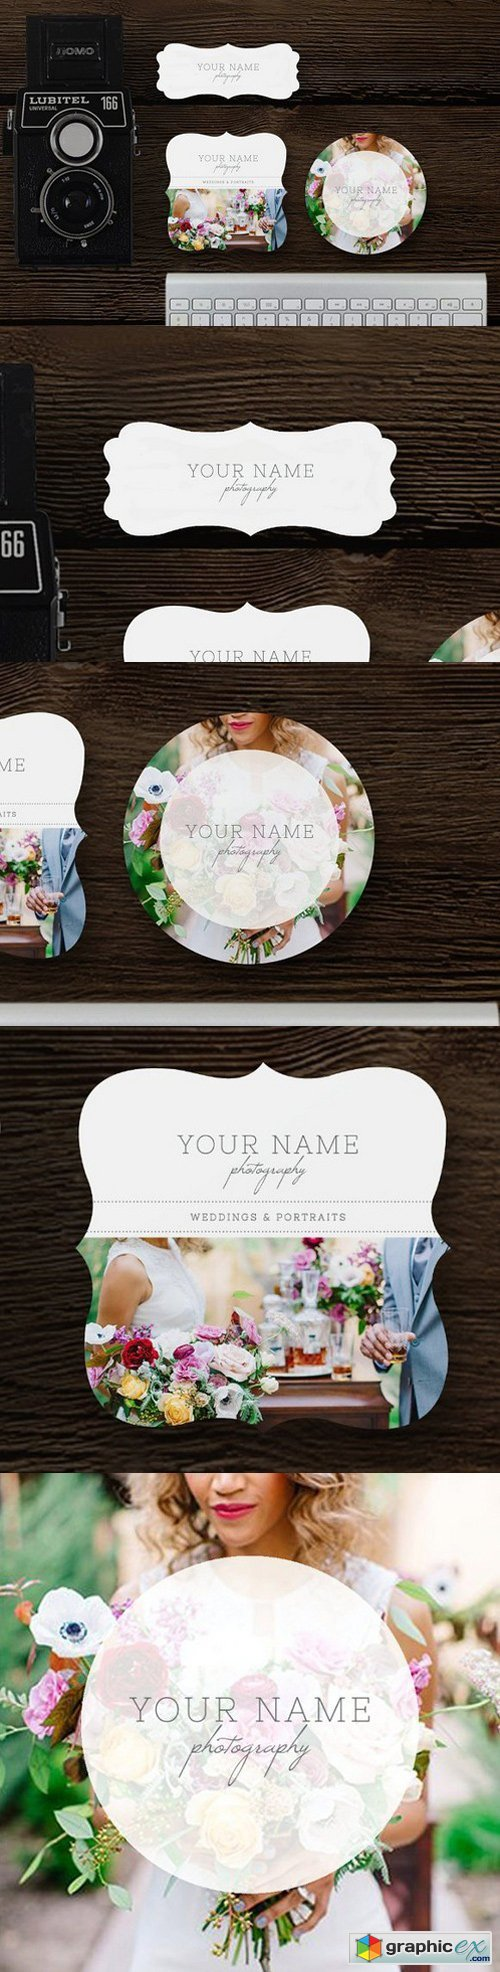 Premade Digital Photoshop Files